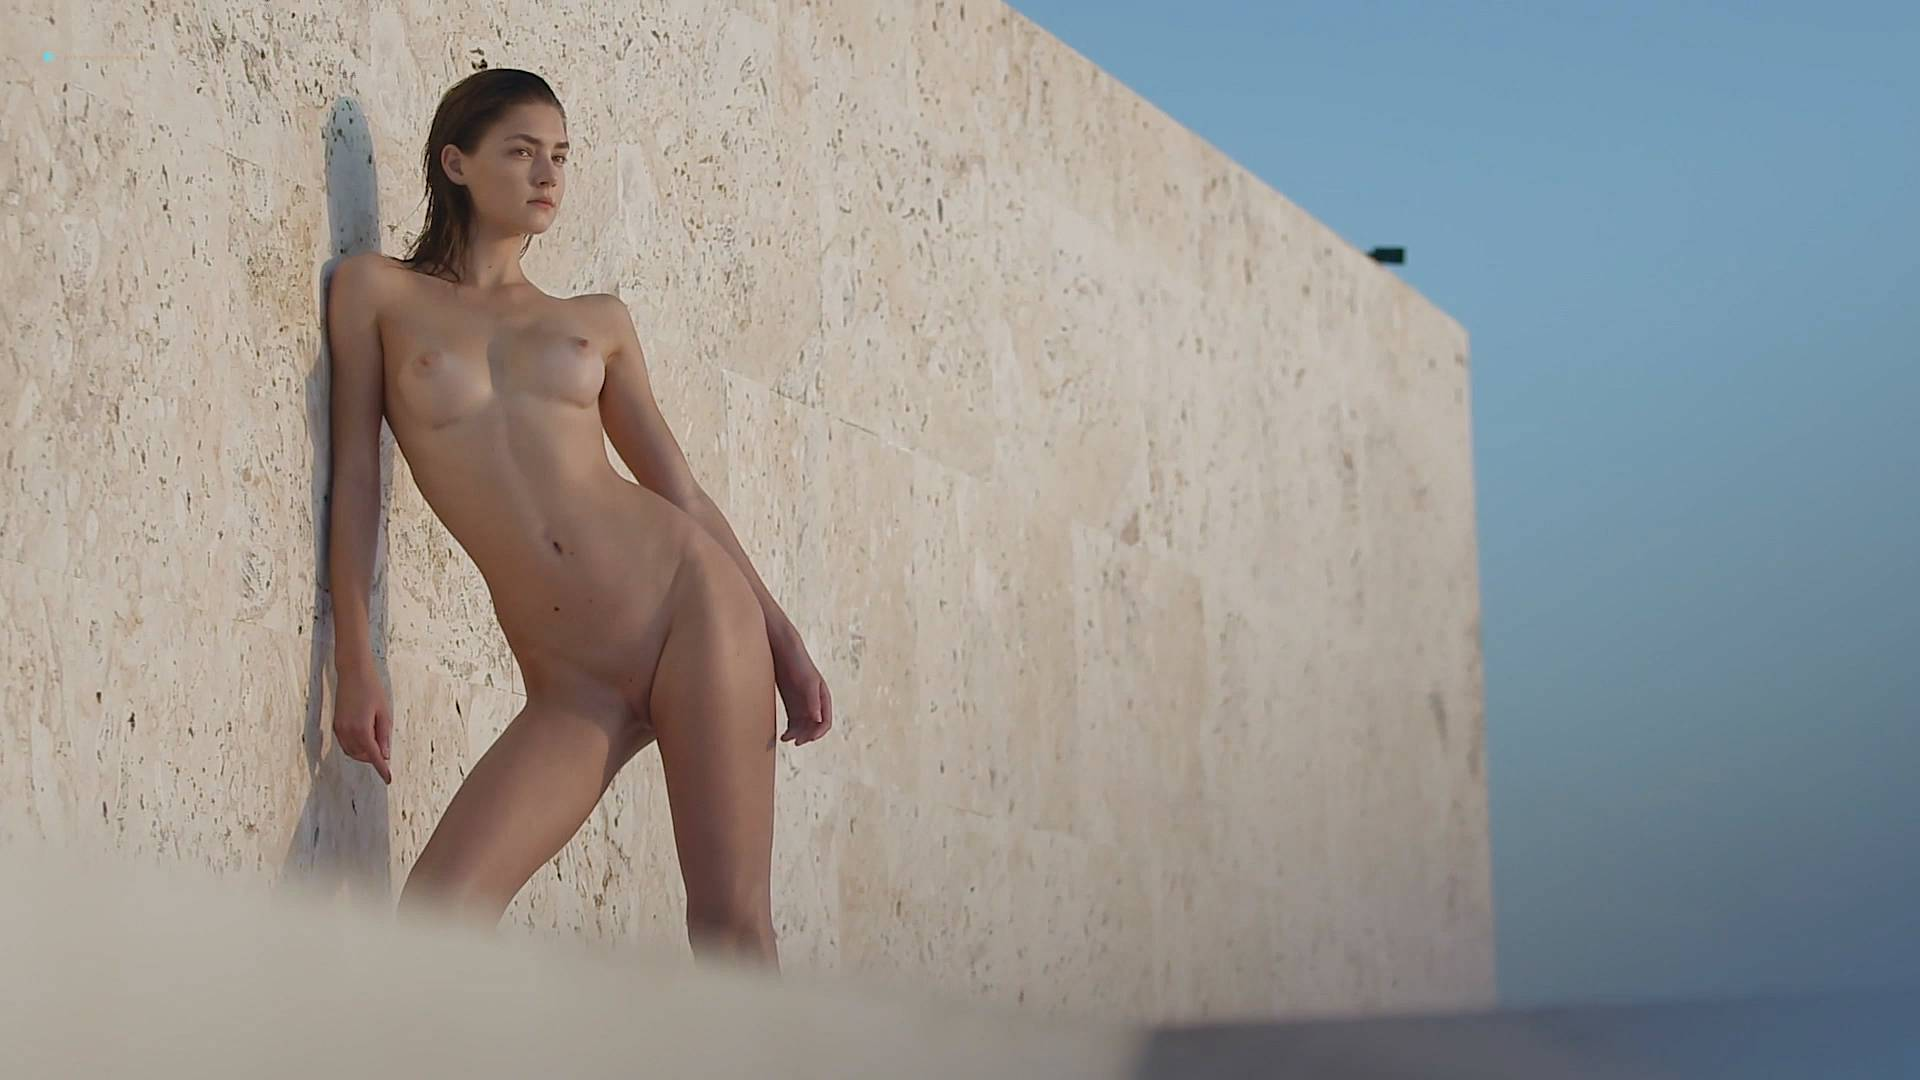 Rachel Cook nude Jessica Clements, Ebonee Davis and others all nude - Nude (2017) HD 1080p (6)